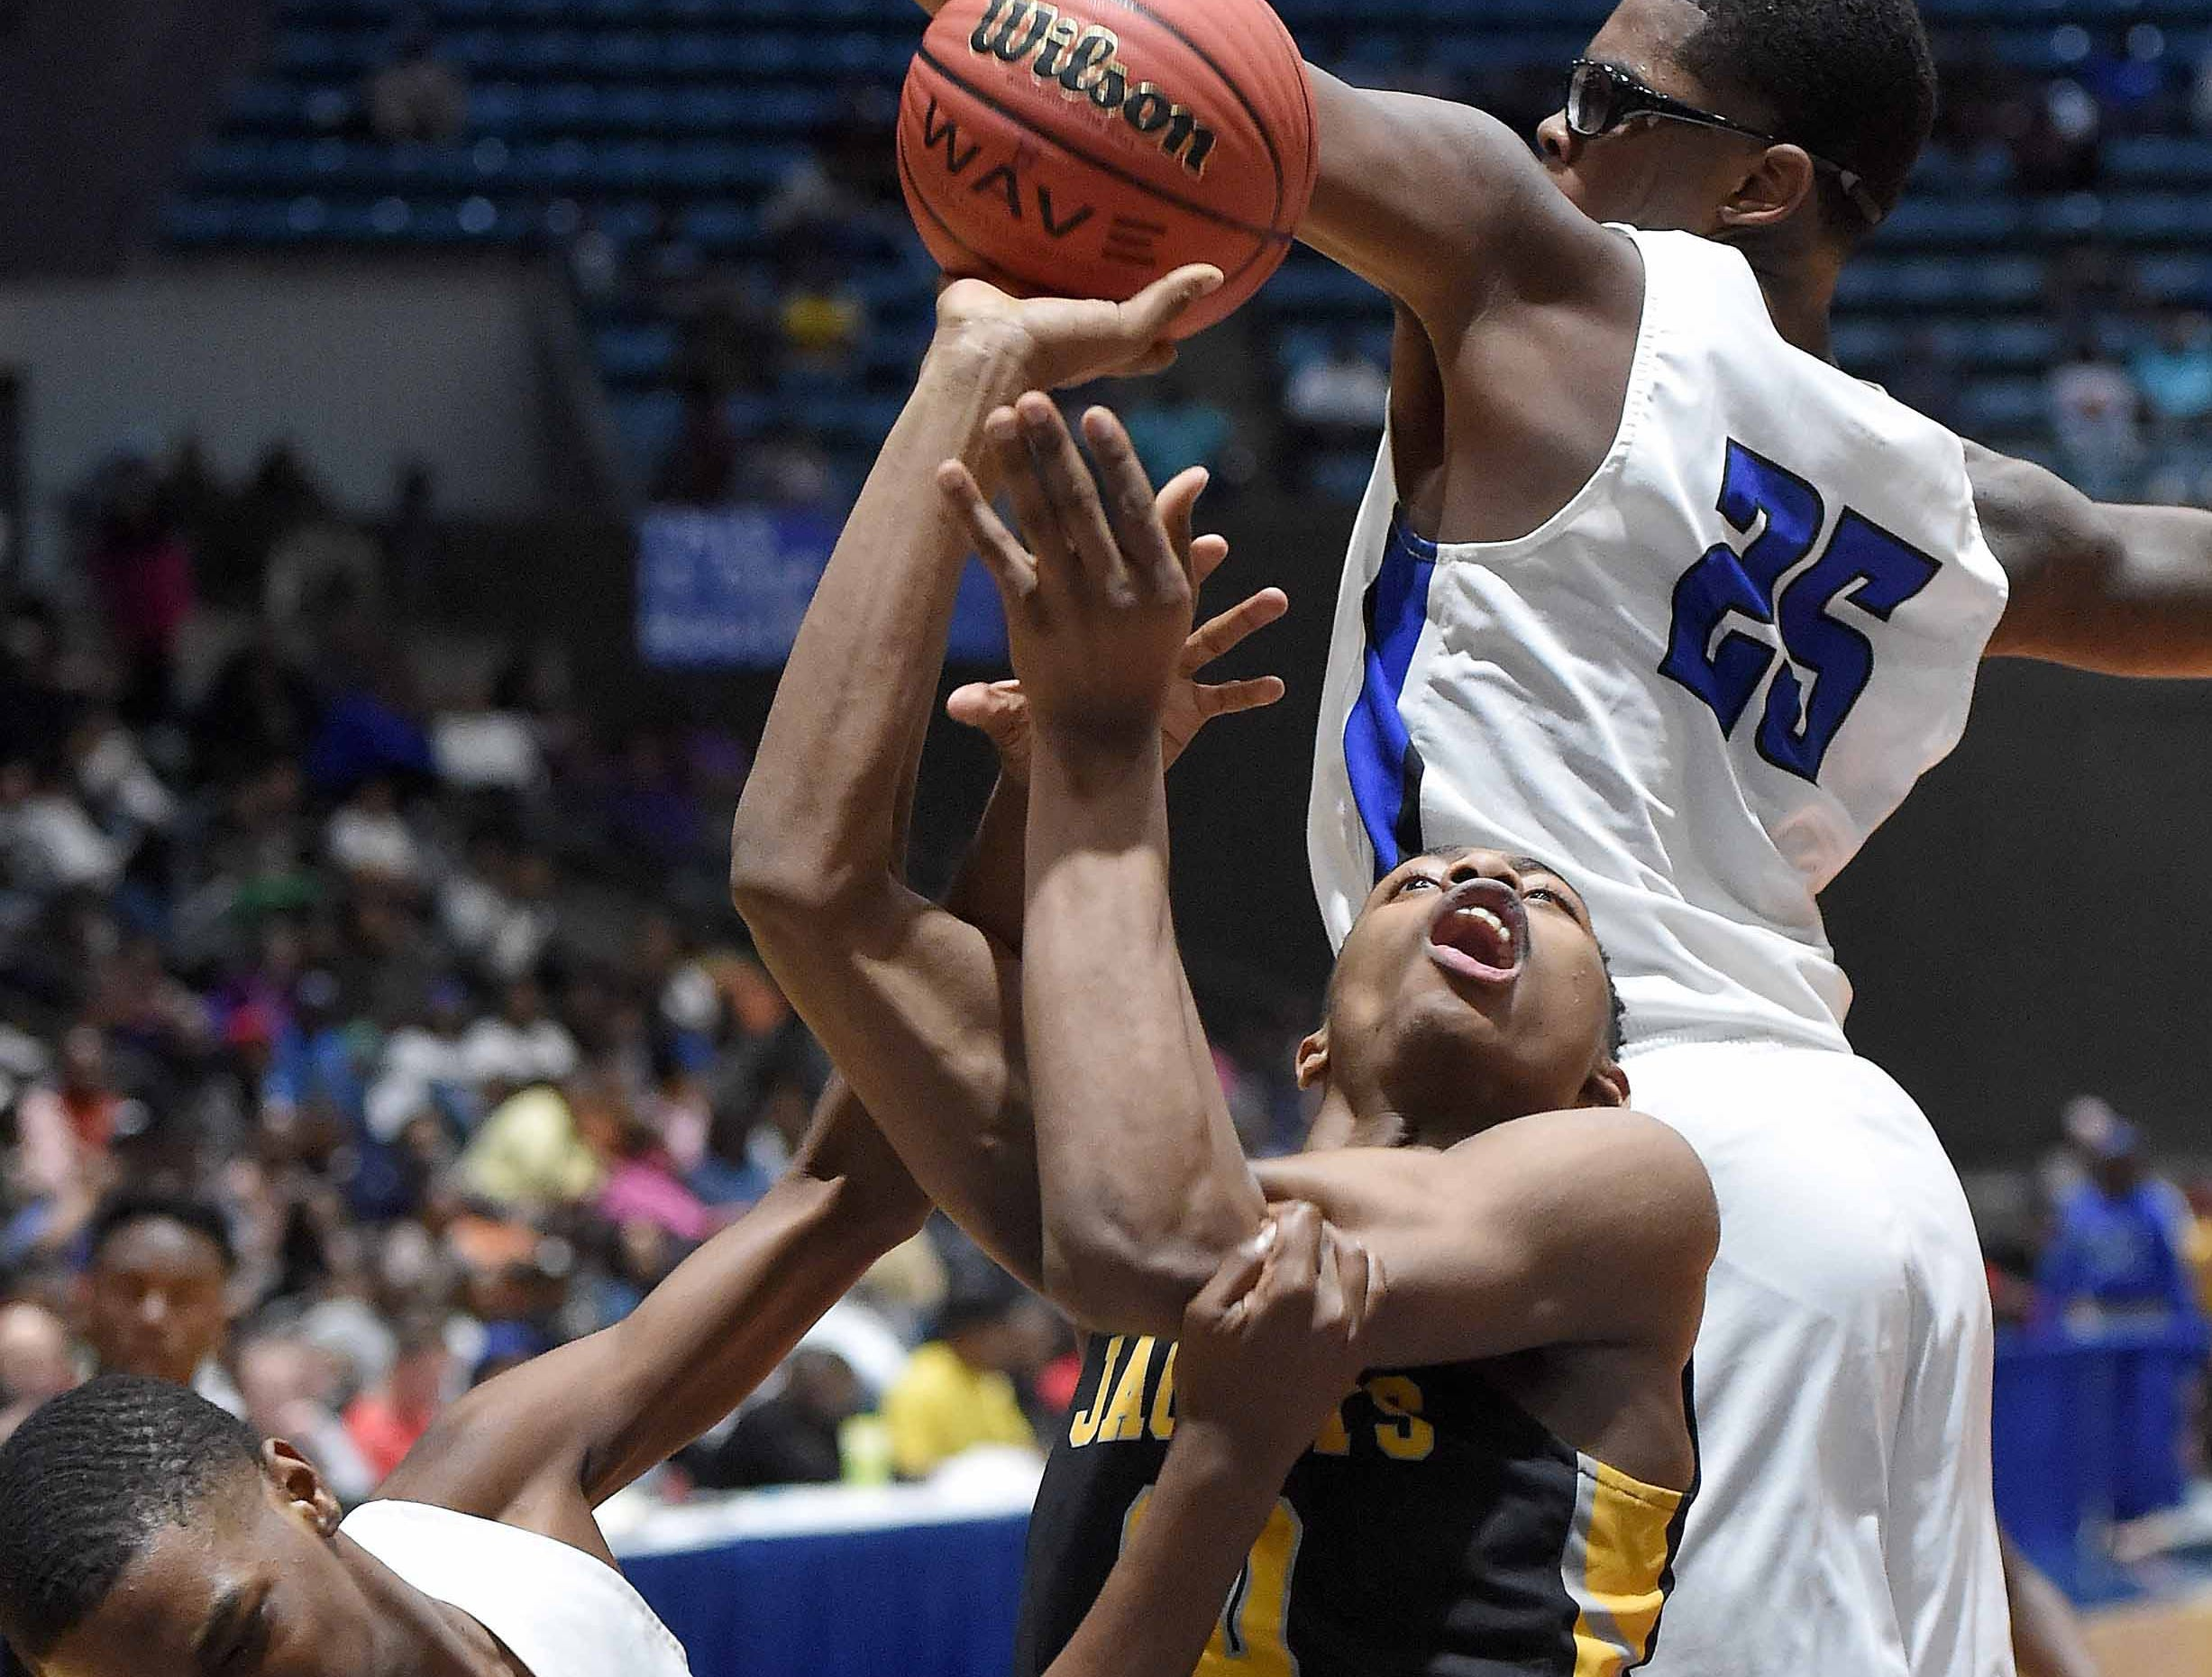 Starkville's Zeke Cook (10) is fouled by Meridian in the Class 6A finals of the MHSAA C Spire State Basketball Championships at the Mississippi Coliseum in Jackson, Miss., on Saturday, March 9, 2019.